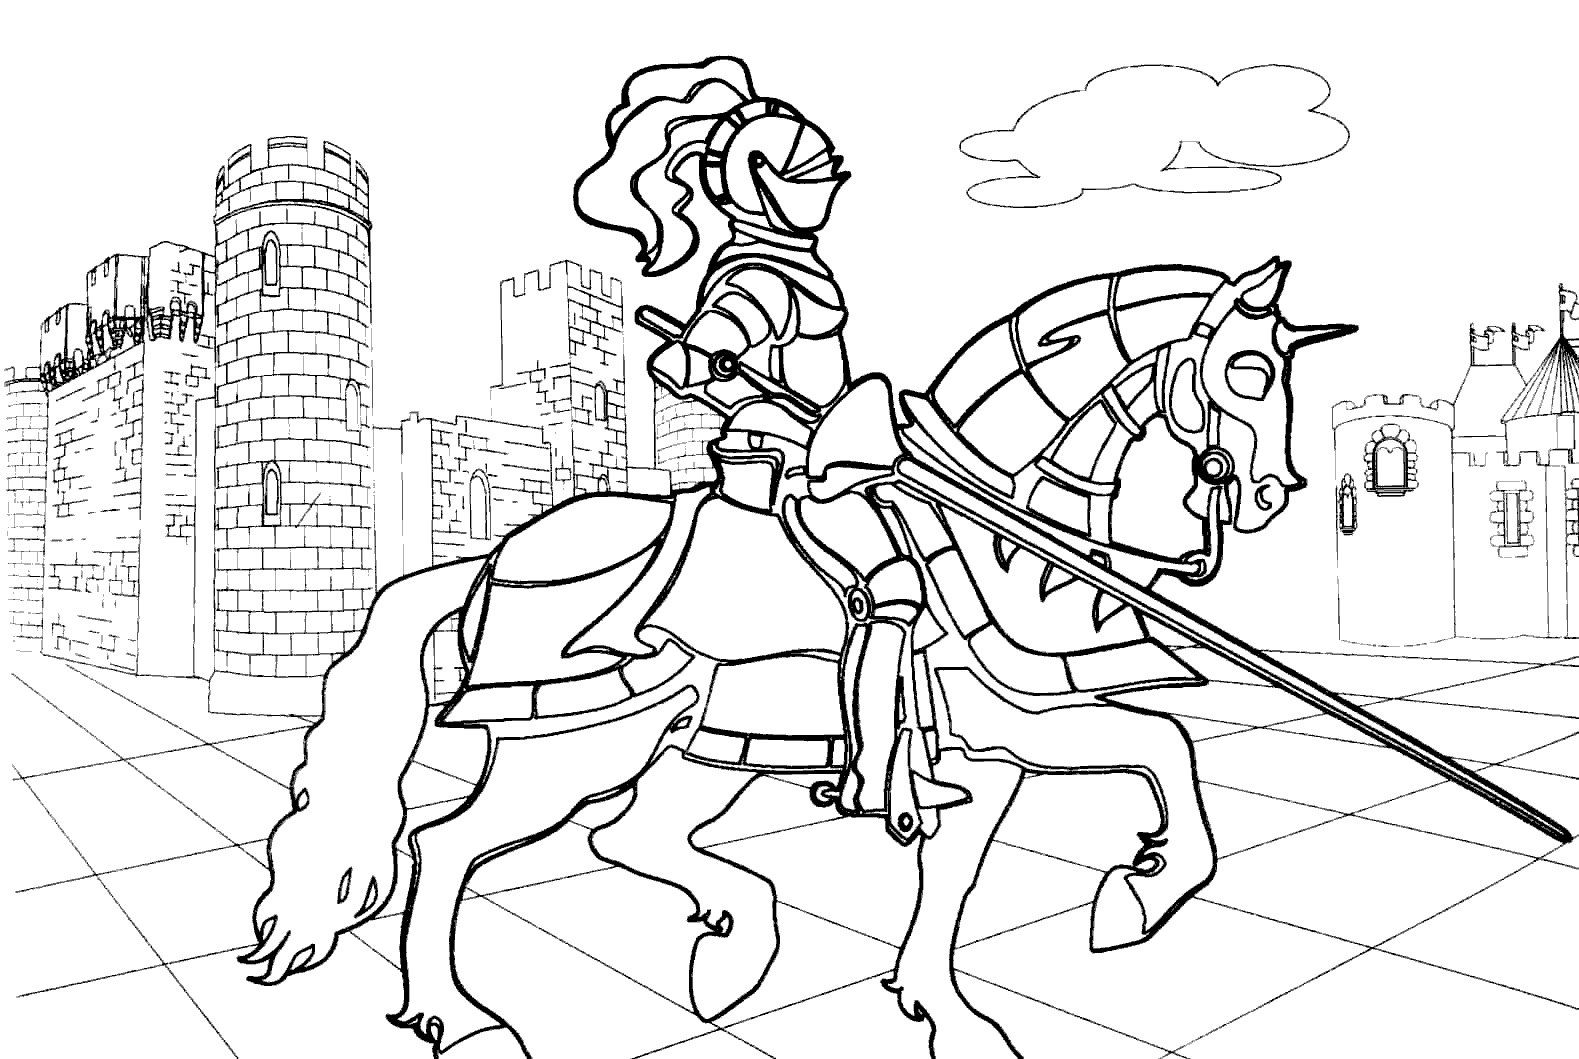 Coloring pages for boys of 11-12 years to download and